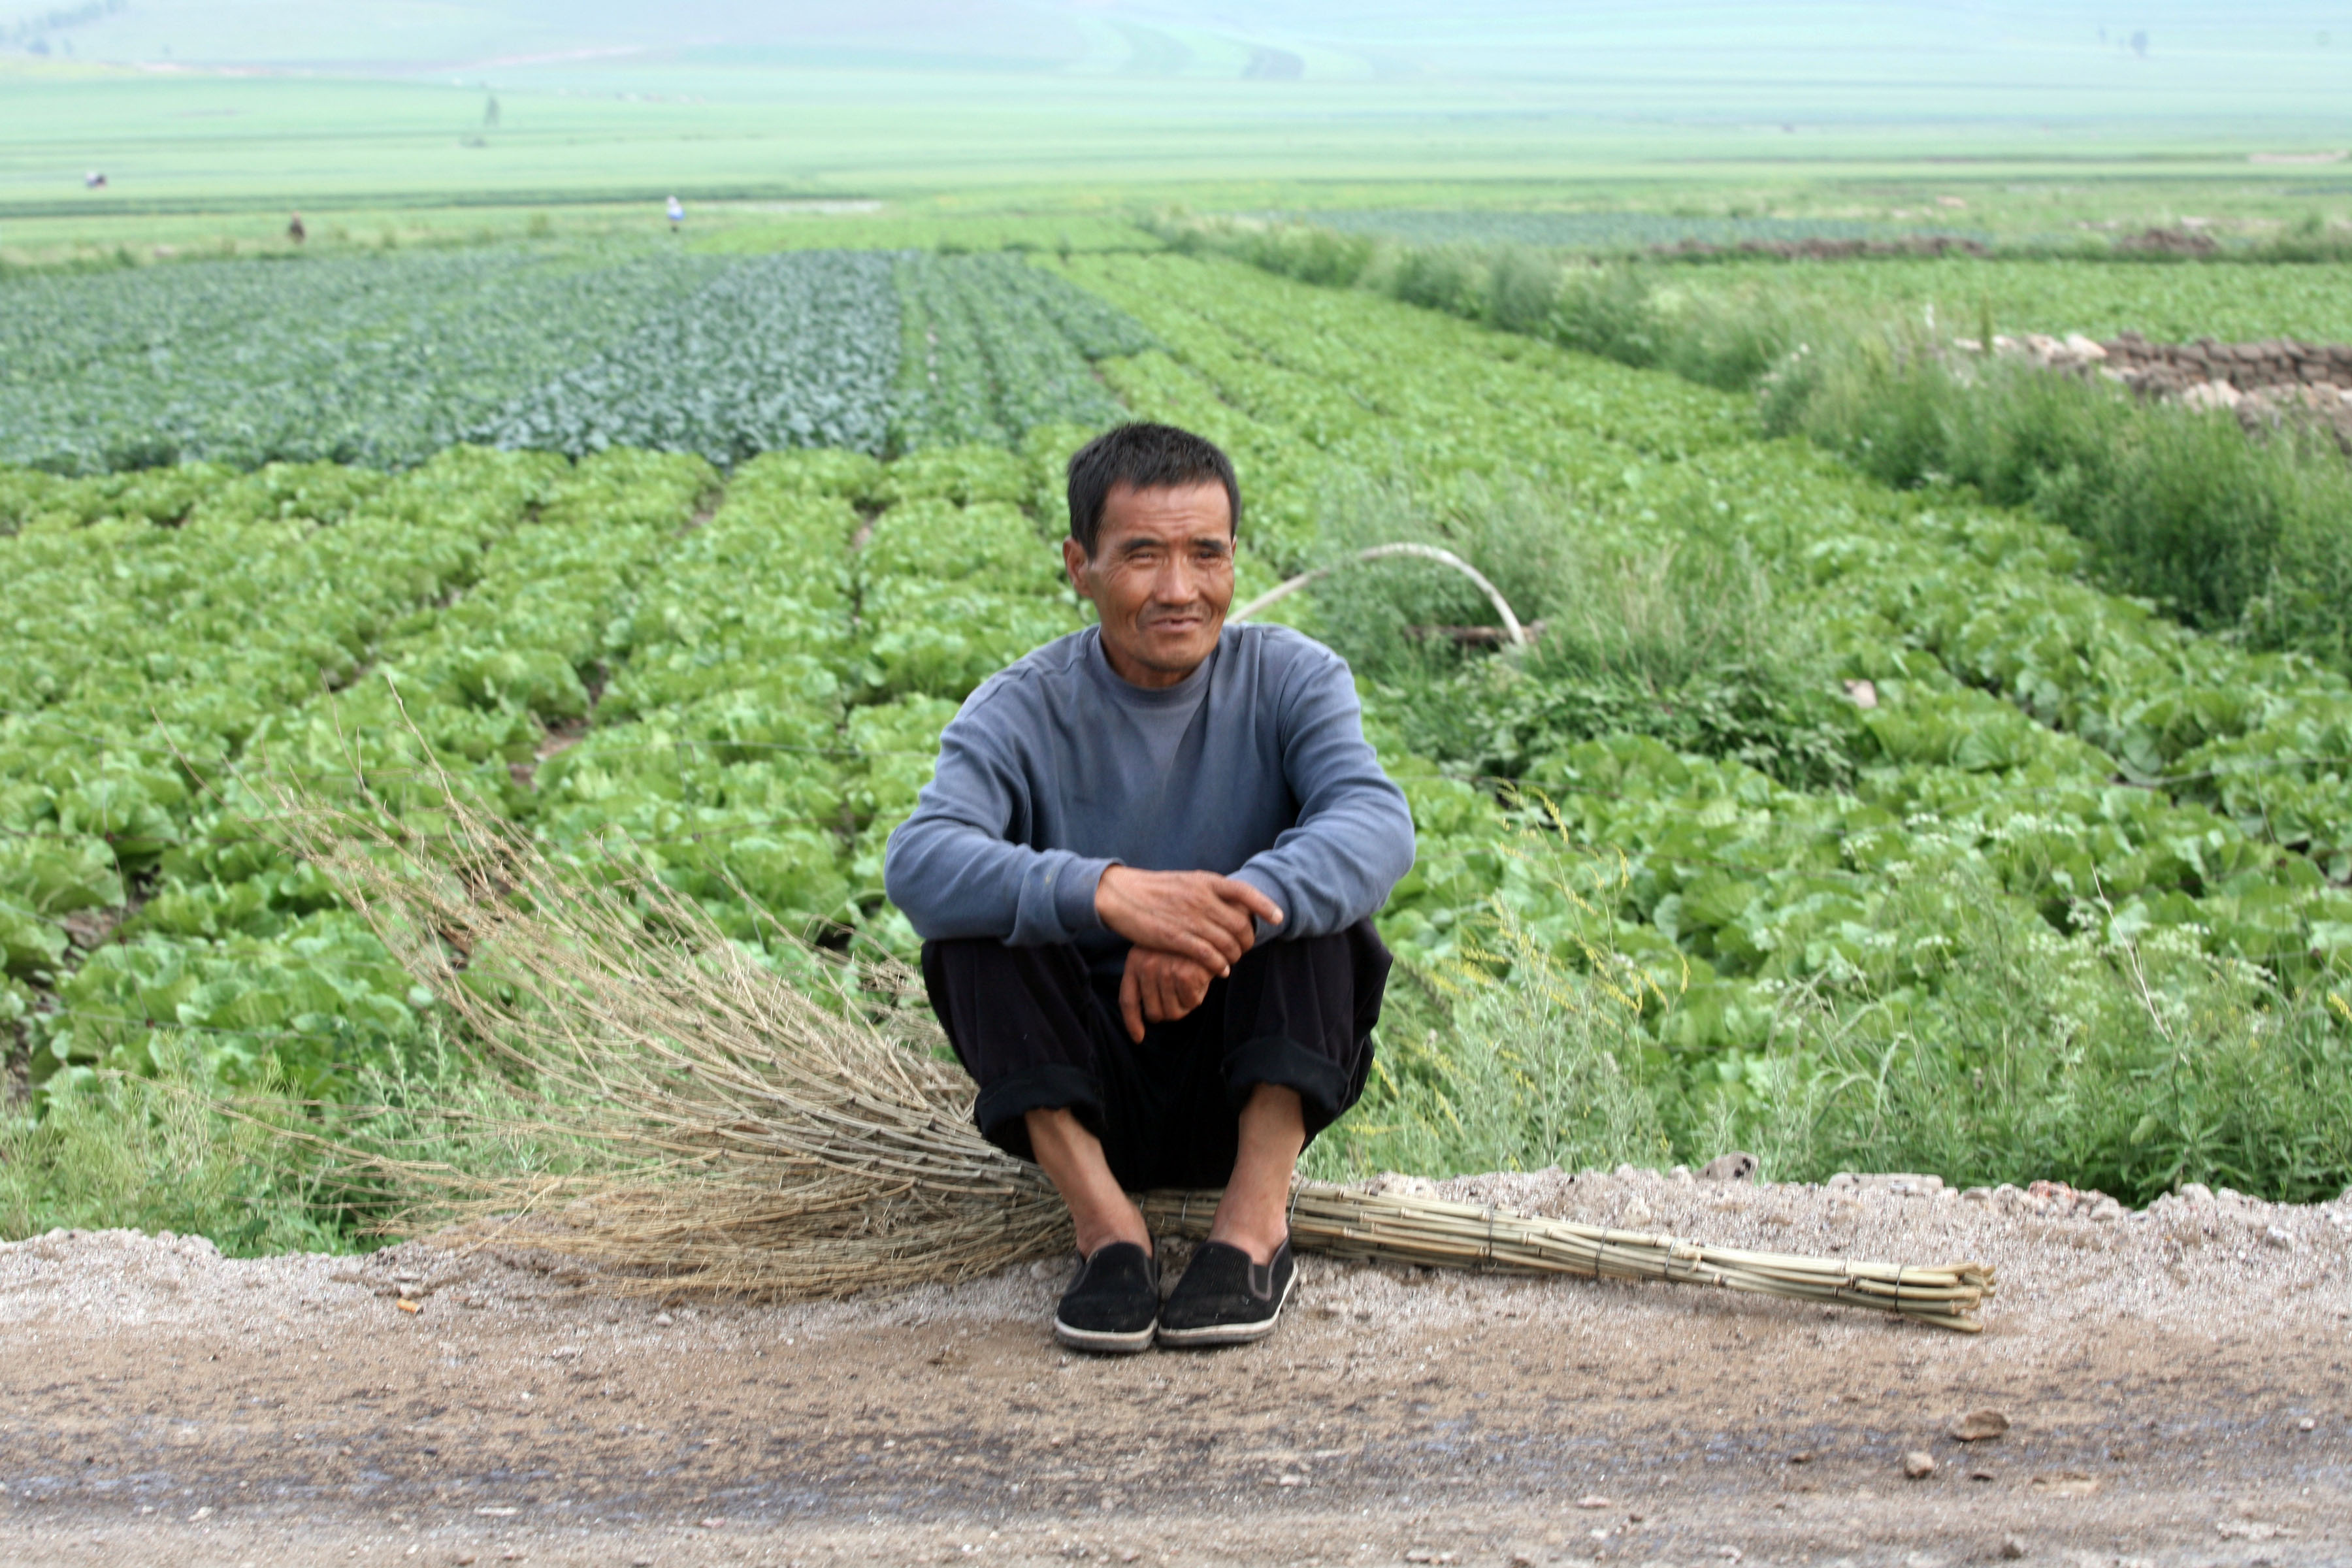 A farmer is seen sitting on a broom next to a vegetable field in Hebei Province, north of Beijing, China in this 2007 file photo.